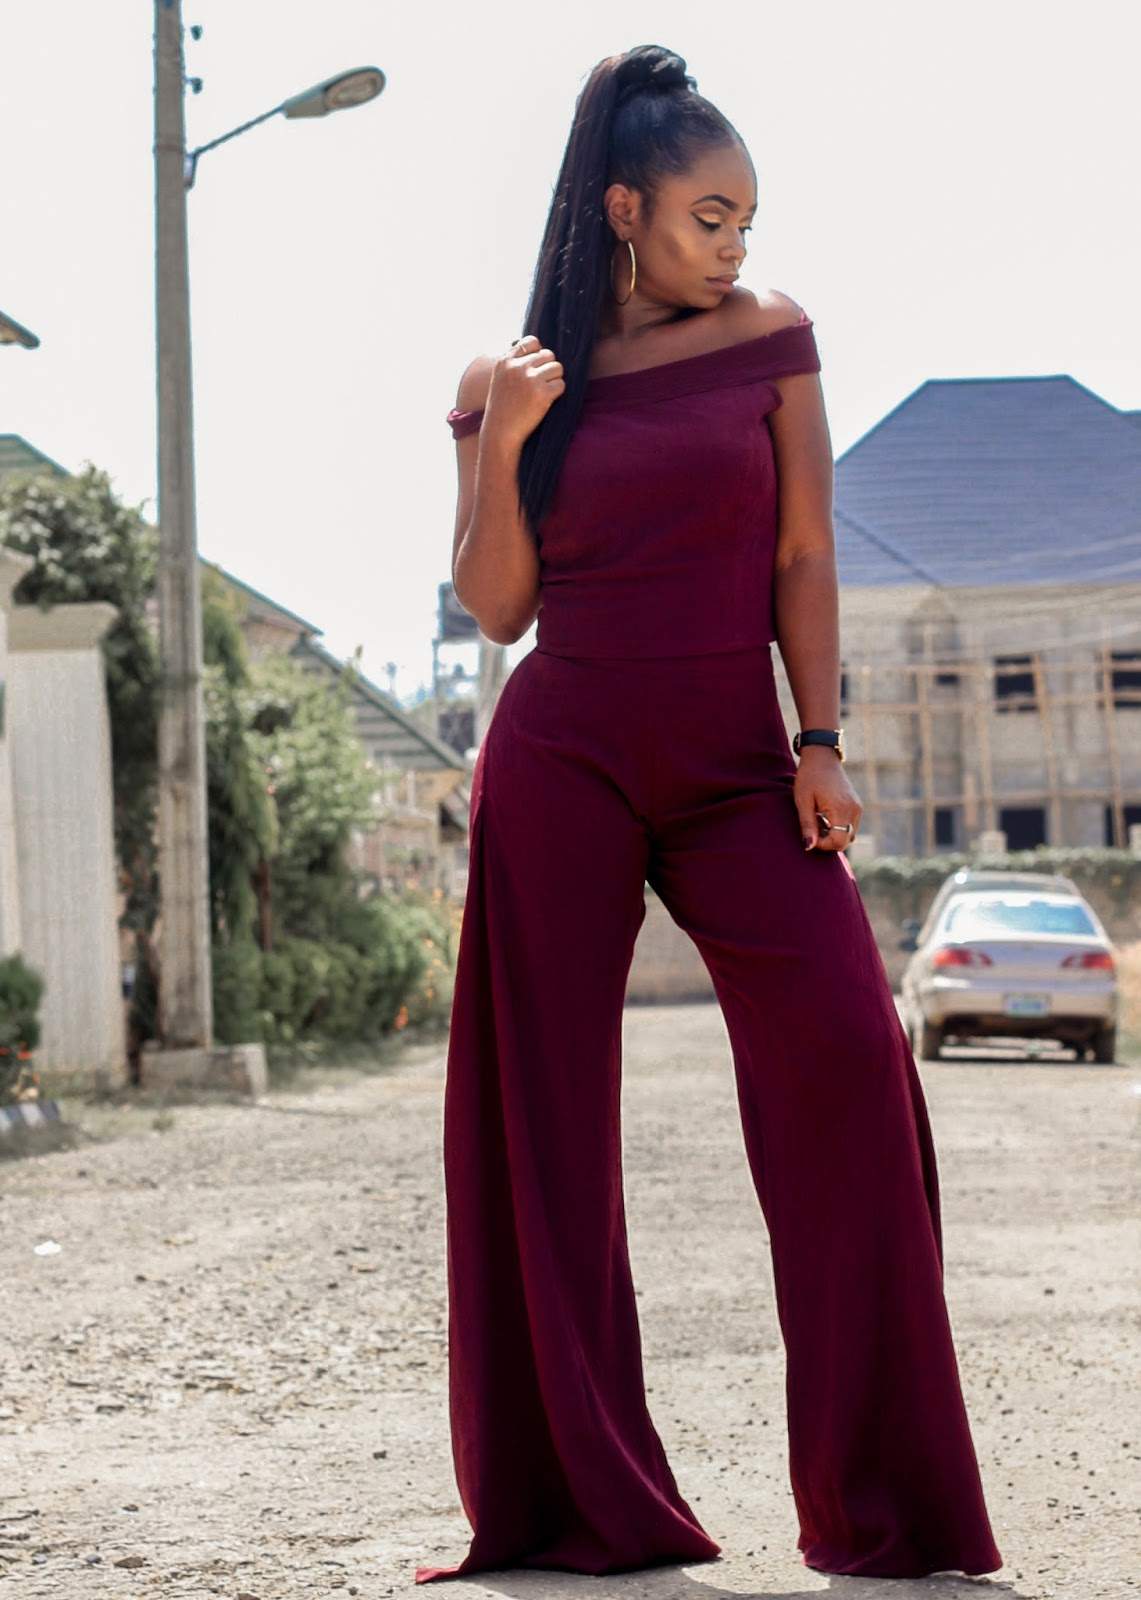 KITAU TOP & FLARED PANTS - Burgundy colored 2 piece set; top and Flared Pants